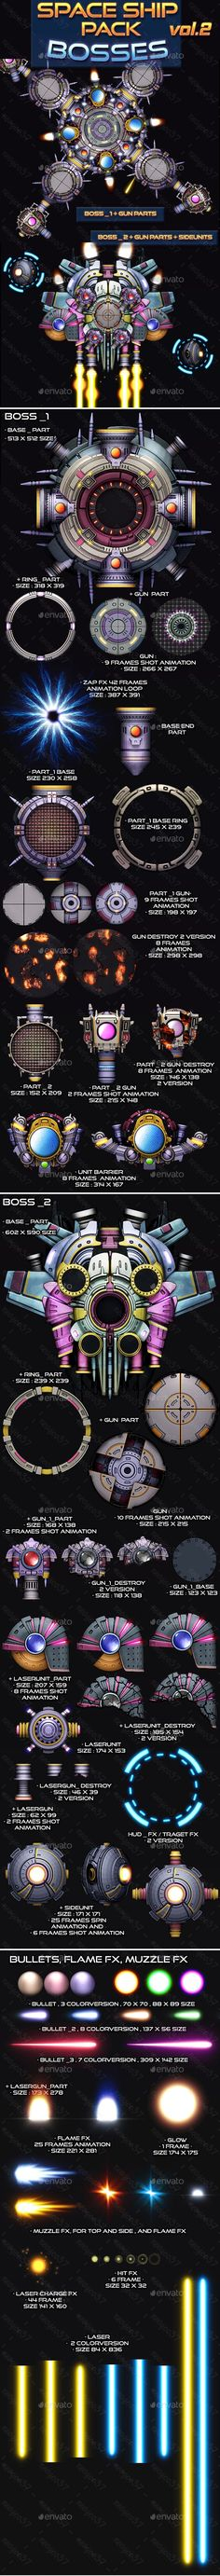 Space Ship Pack Bosses Vol 2 - Sprites Game Assets Free Game Assets, Game Background, Space Ship, Vol 2, Link, Boss, Sci Fi, Photoshop, Packing